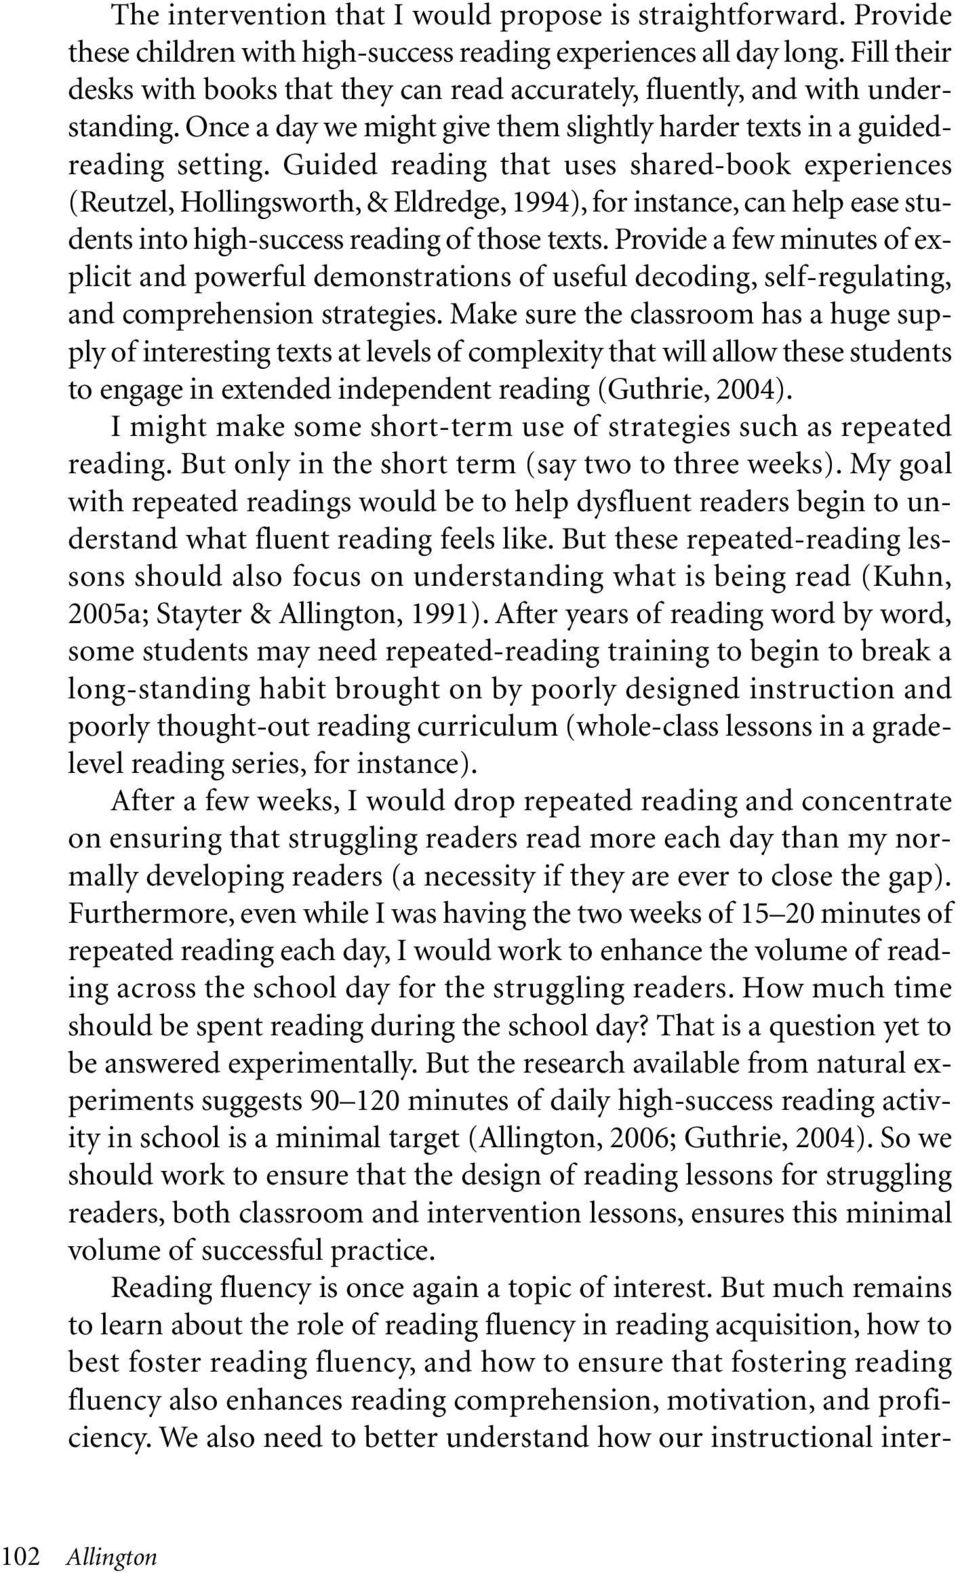 Guided reading that uses shared-book experiences (Reutzel, Hollingsworth, & Eldredge, 1994), for instance, can help ease students into high-success reading of those texts.